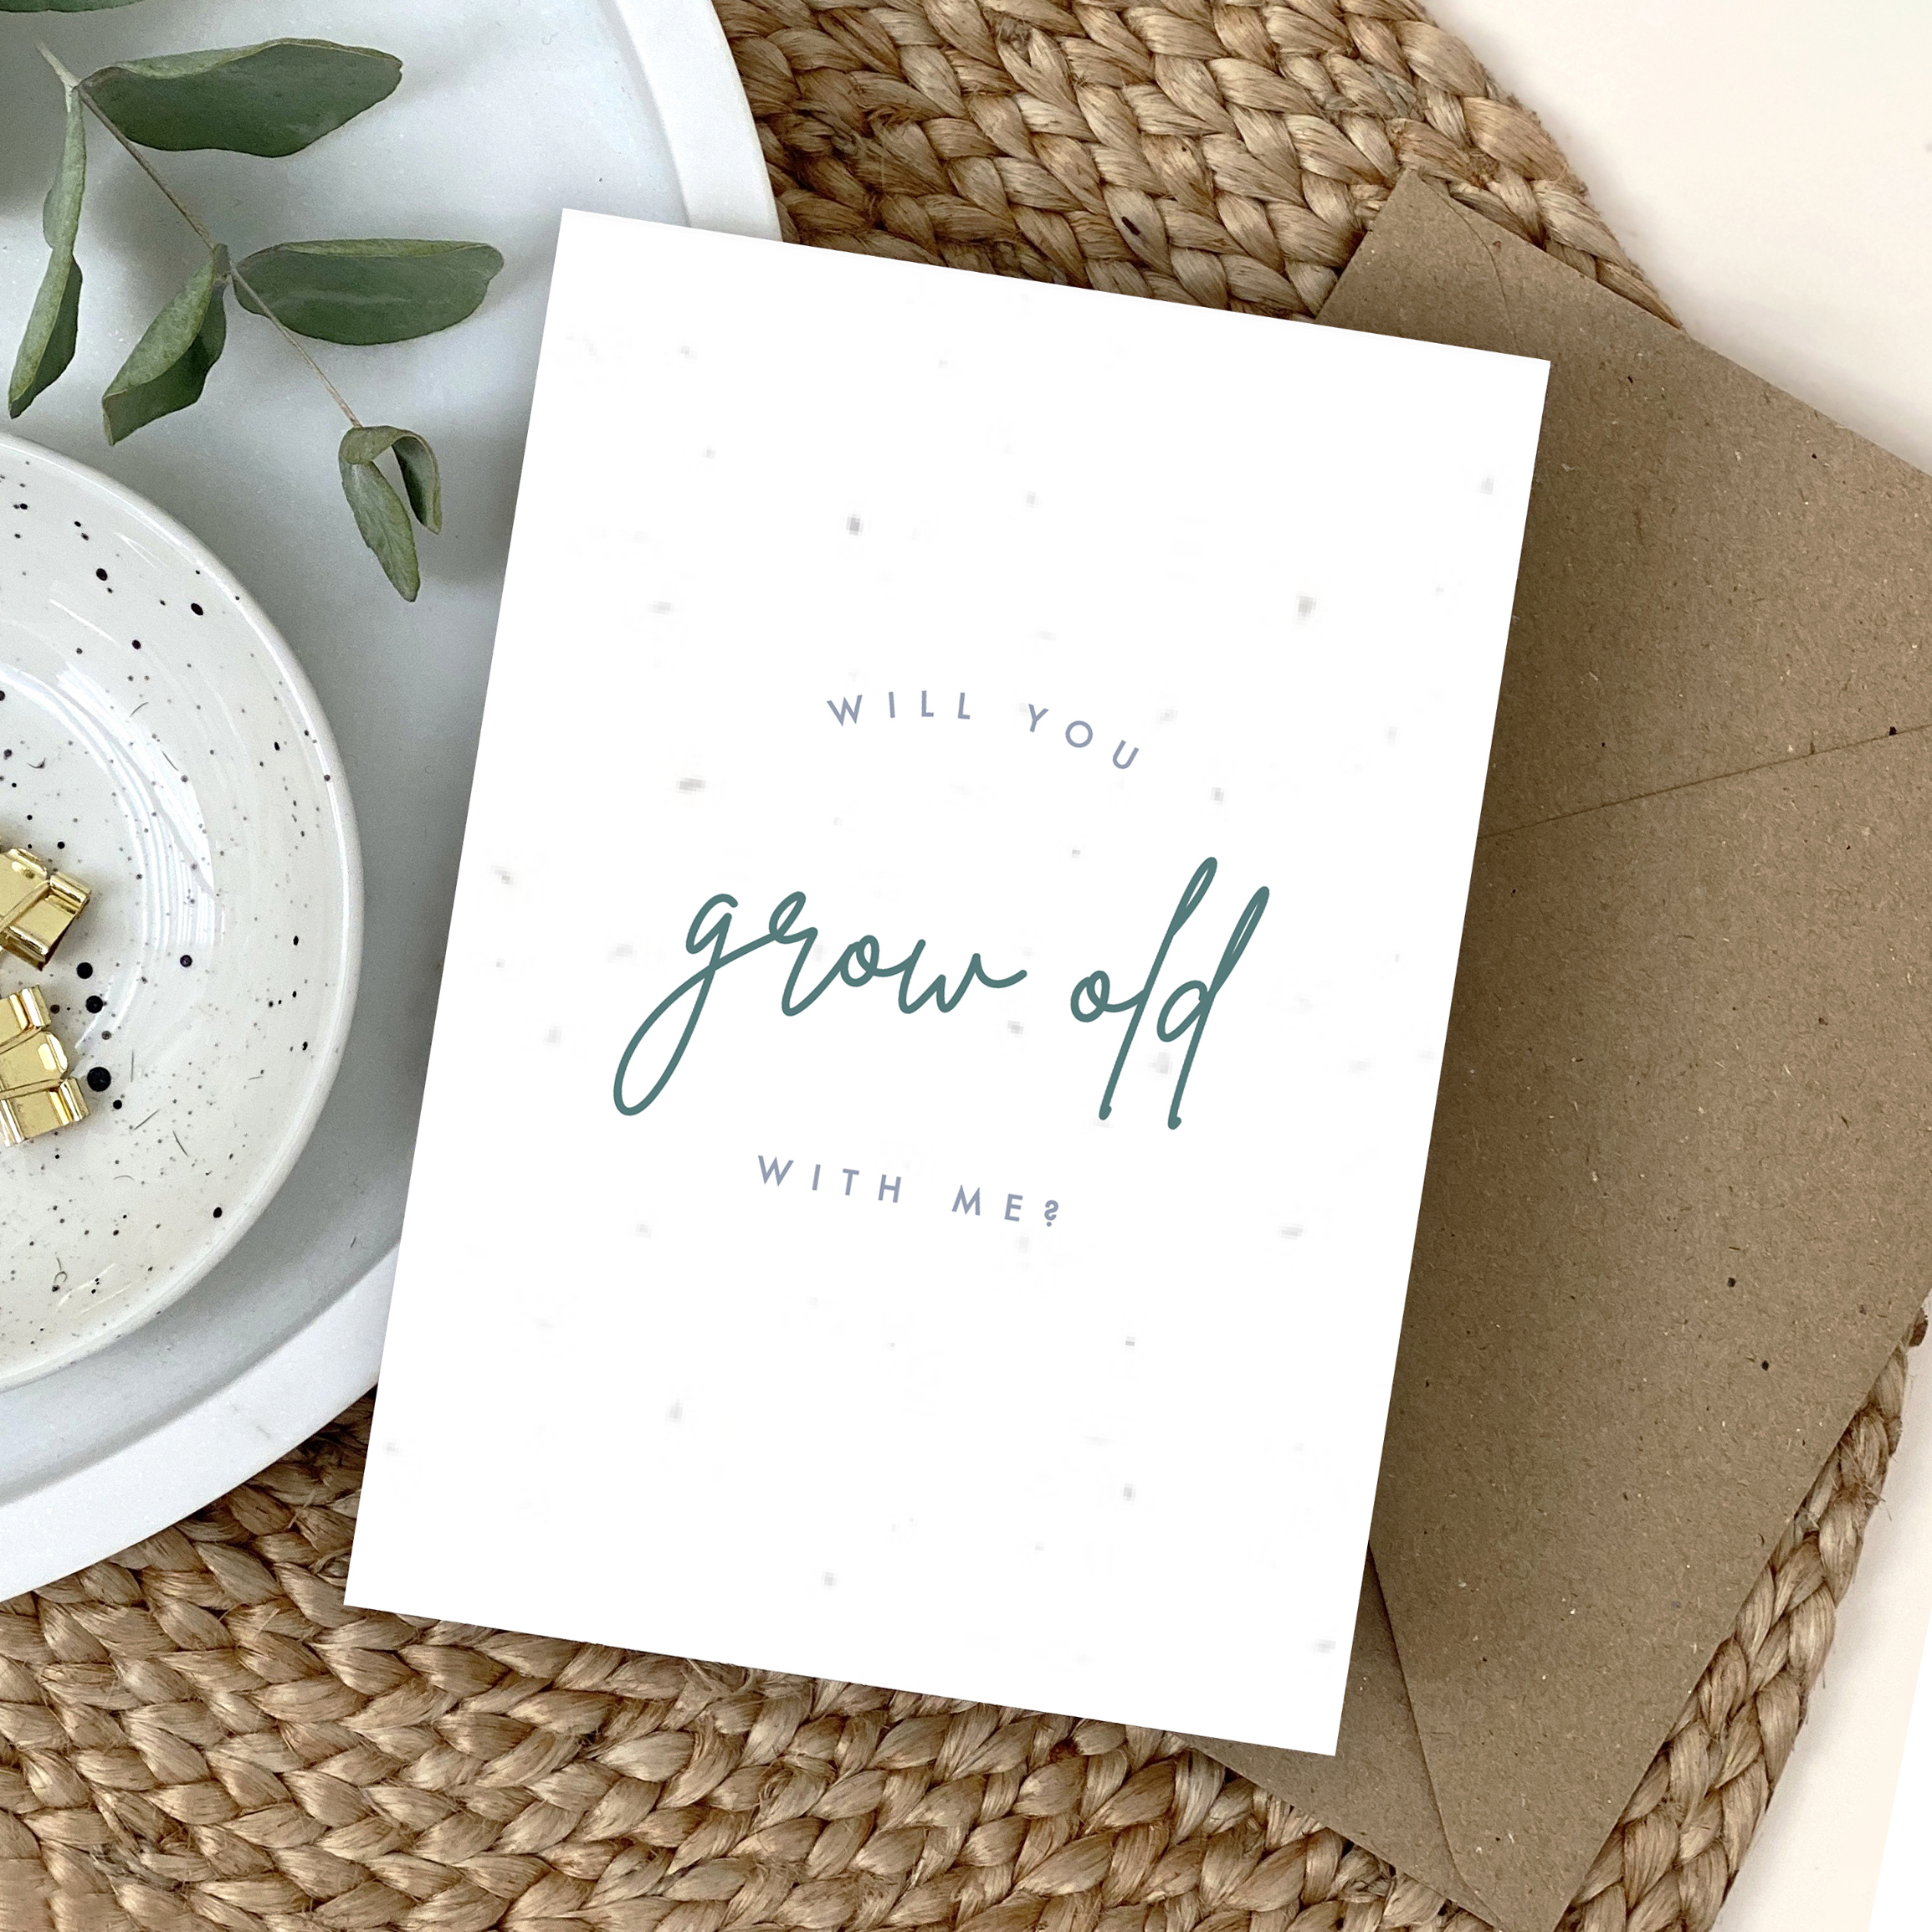 Will You Grow Old With Me Plantable Card - Designed by Rodo Creative